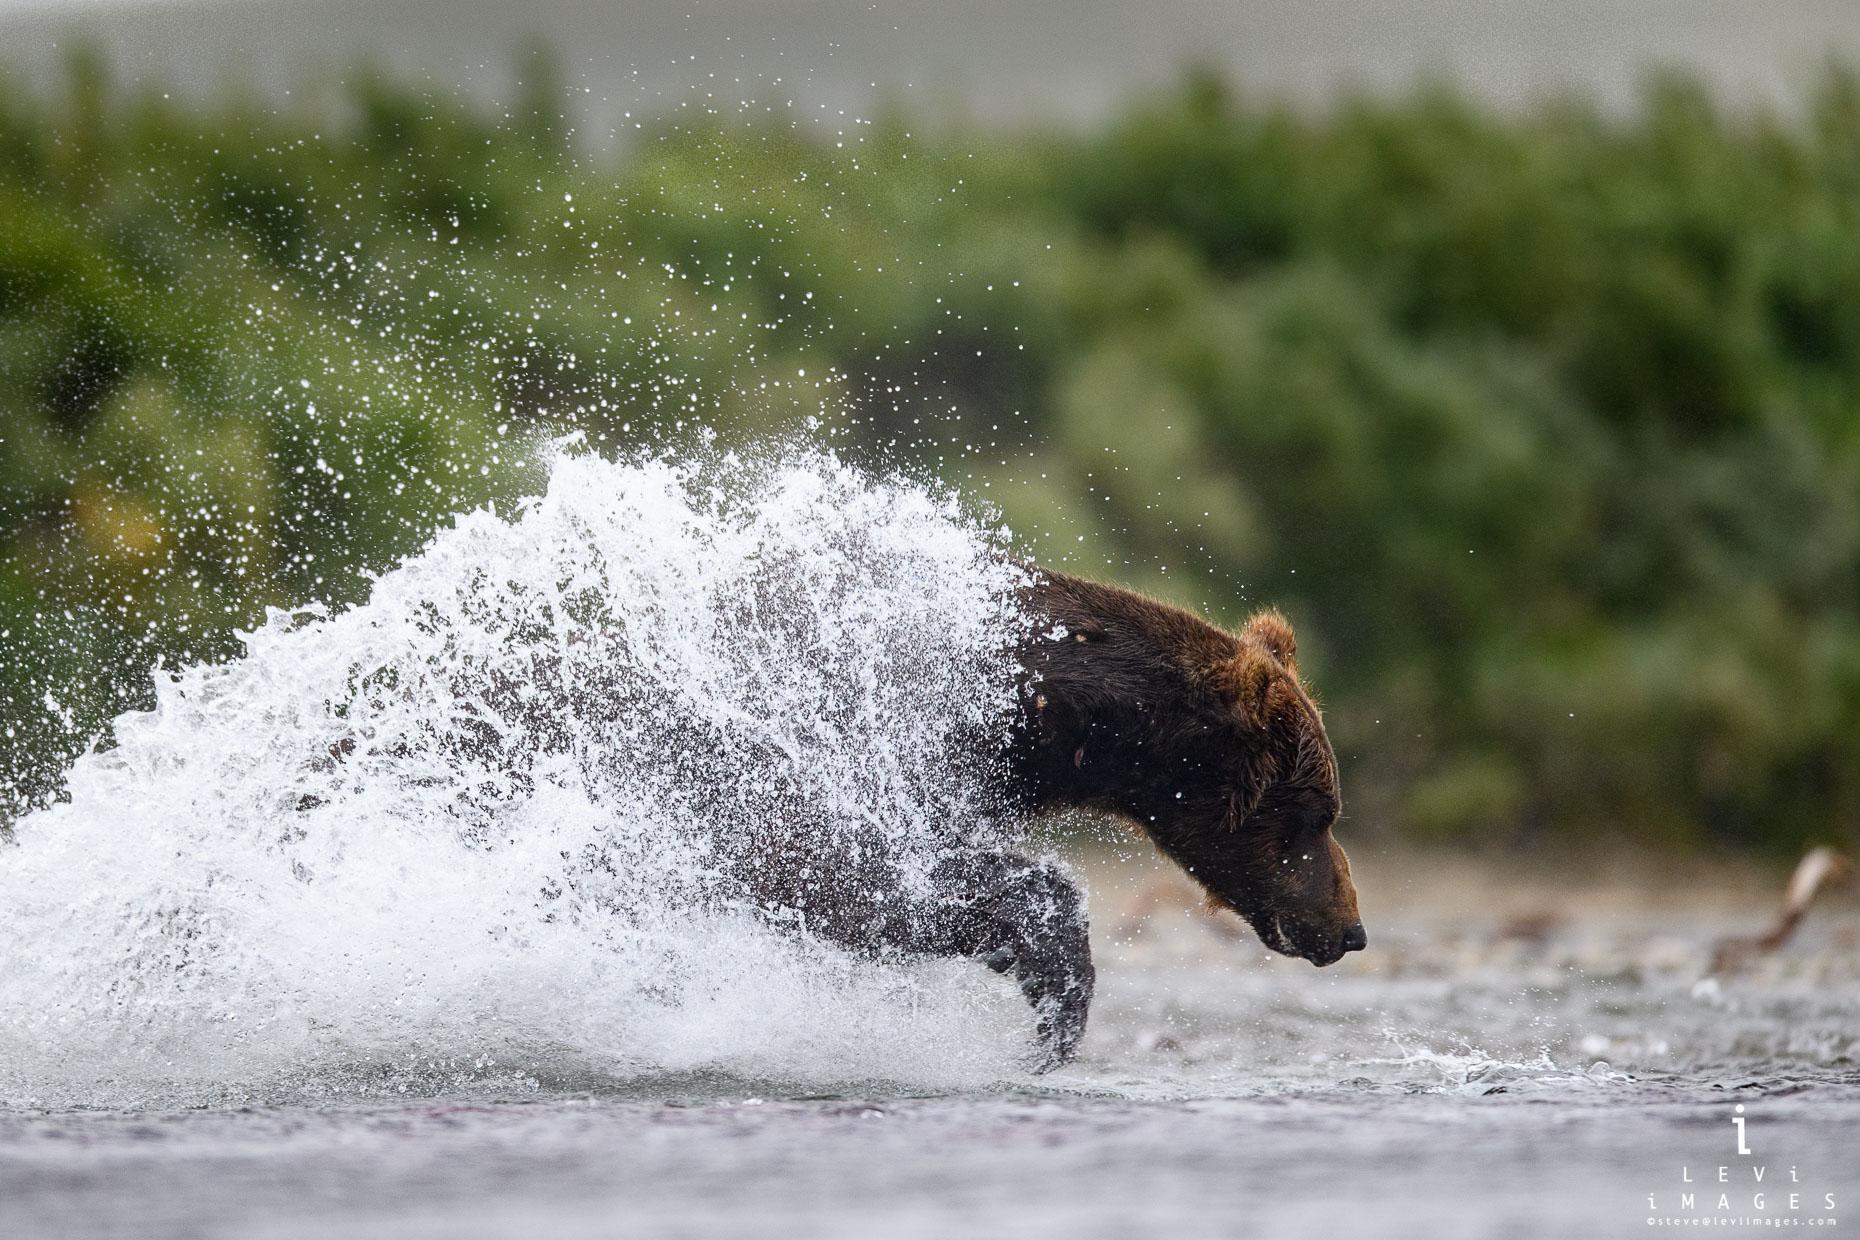 A coat of water envelopes a brown bear (Ursus arctos) as it surges for a fish. Katmai, Alaska